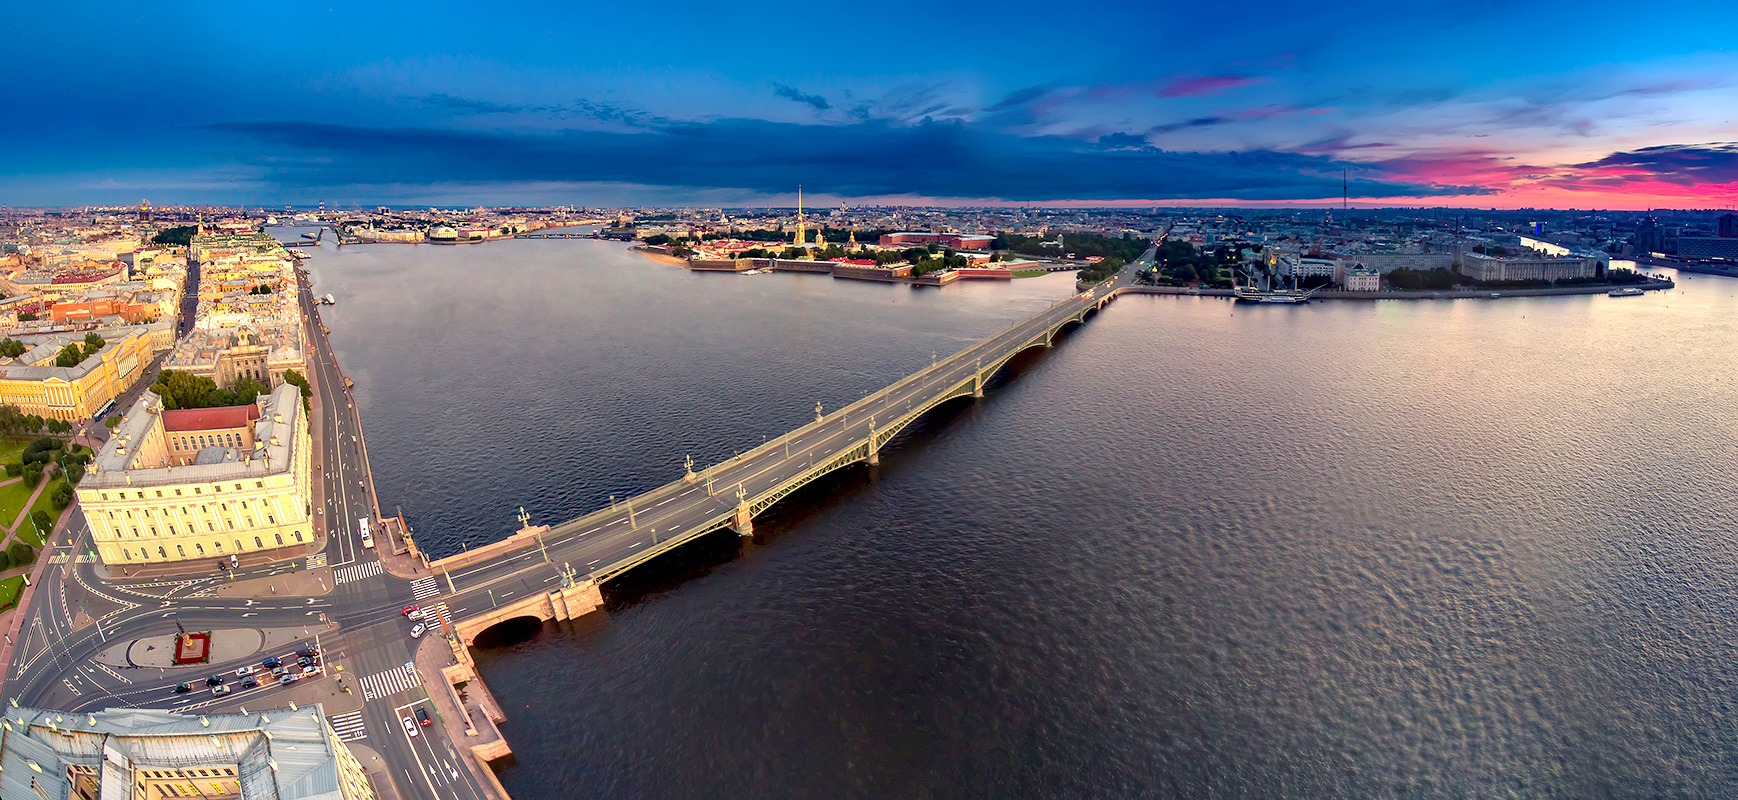 Panorama in St. Petersburg. Trinity Bridge. Peter-Pavel's Fortress.